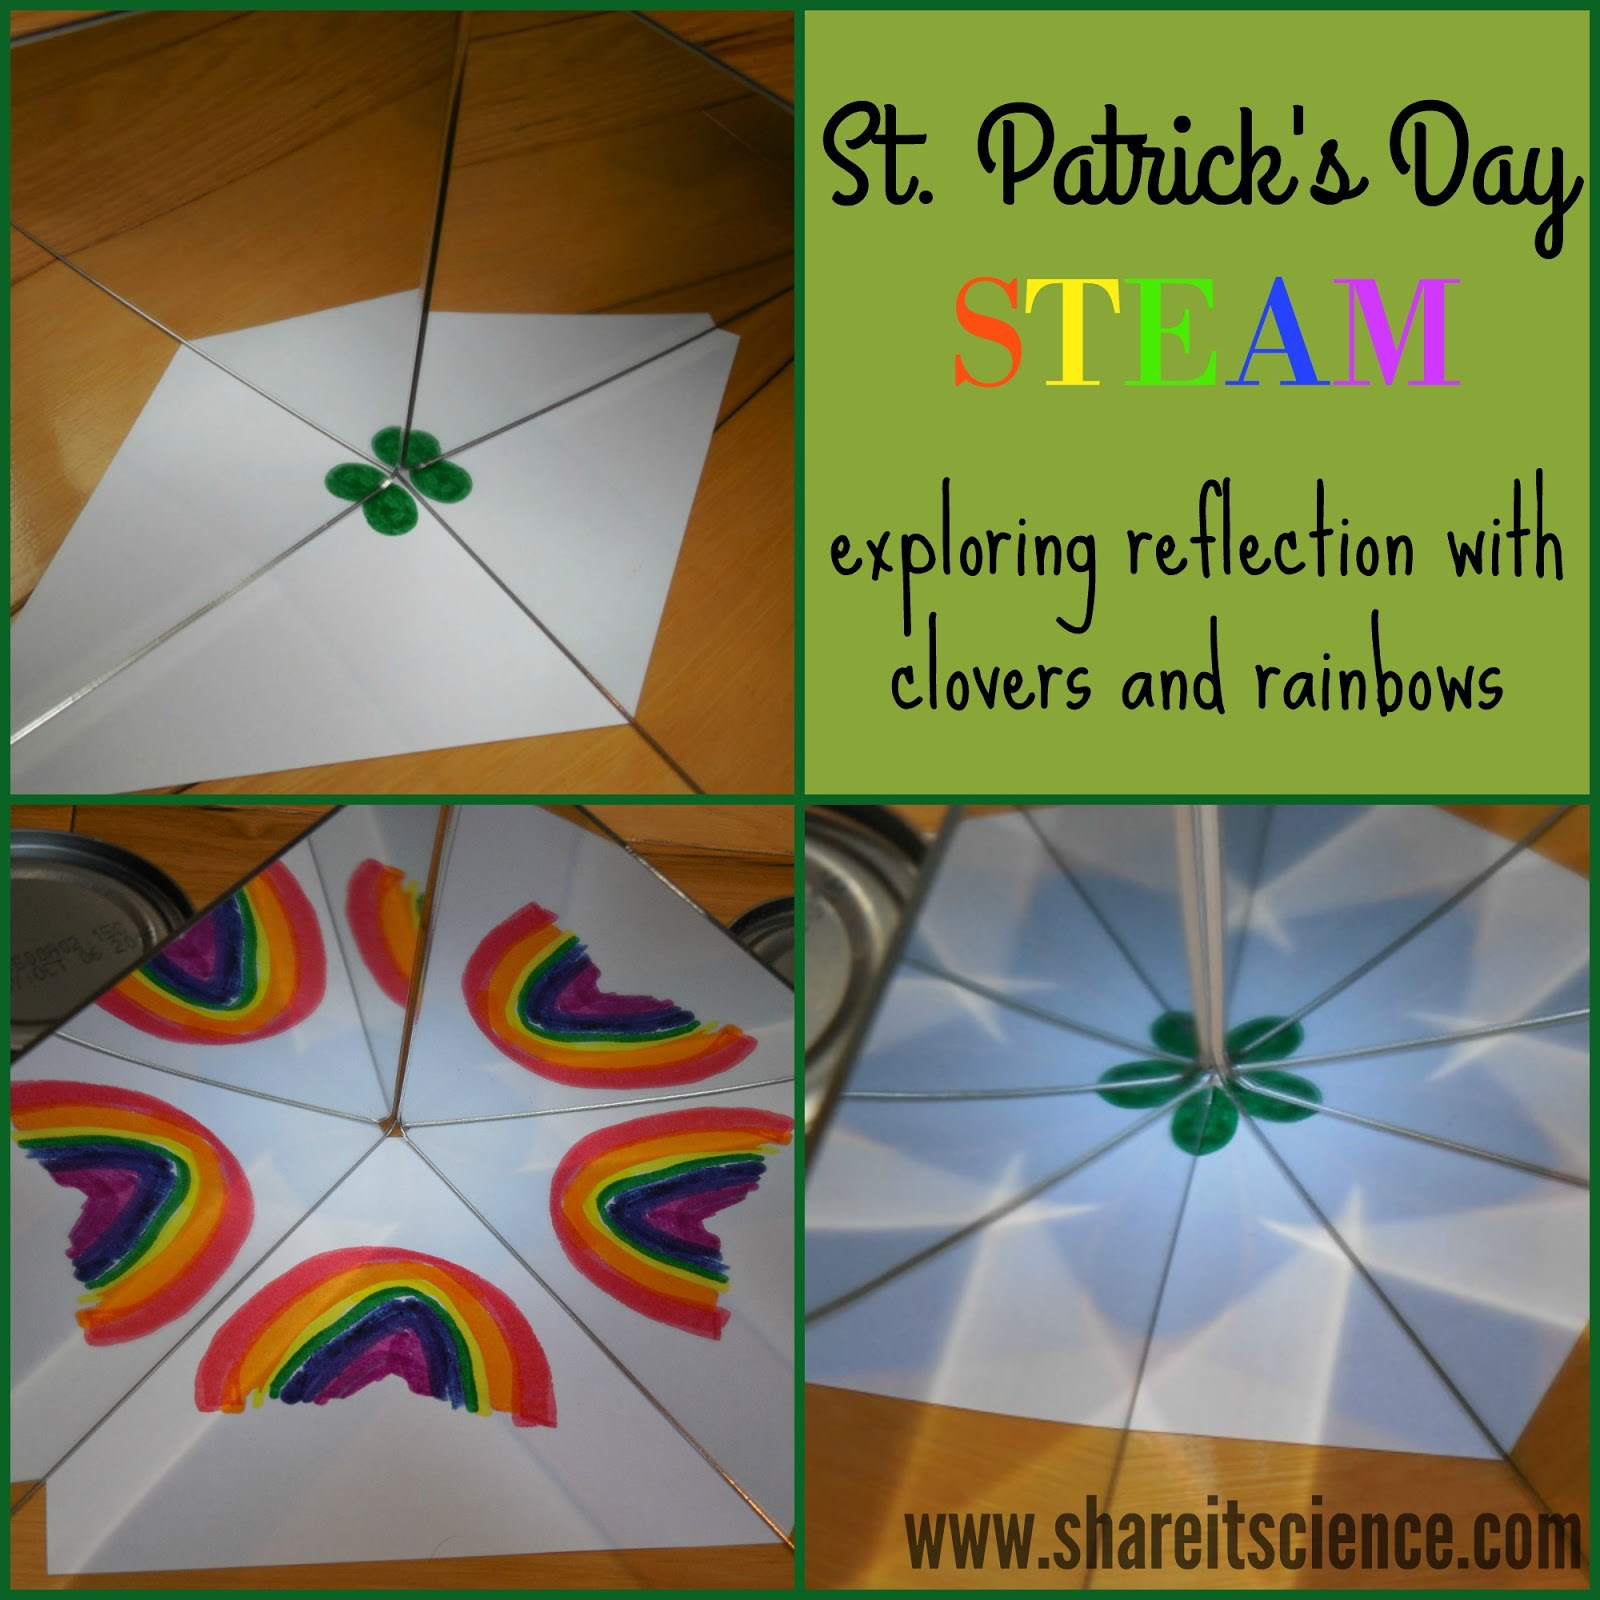 Share It Science Exploring Reflections Creating 4 Leaf Clovers With Mirrors